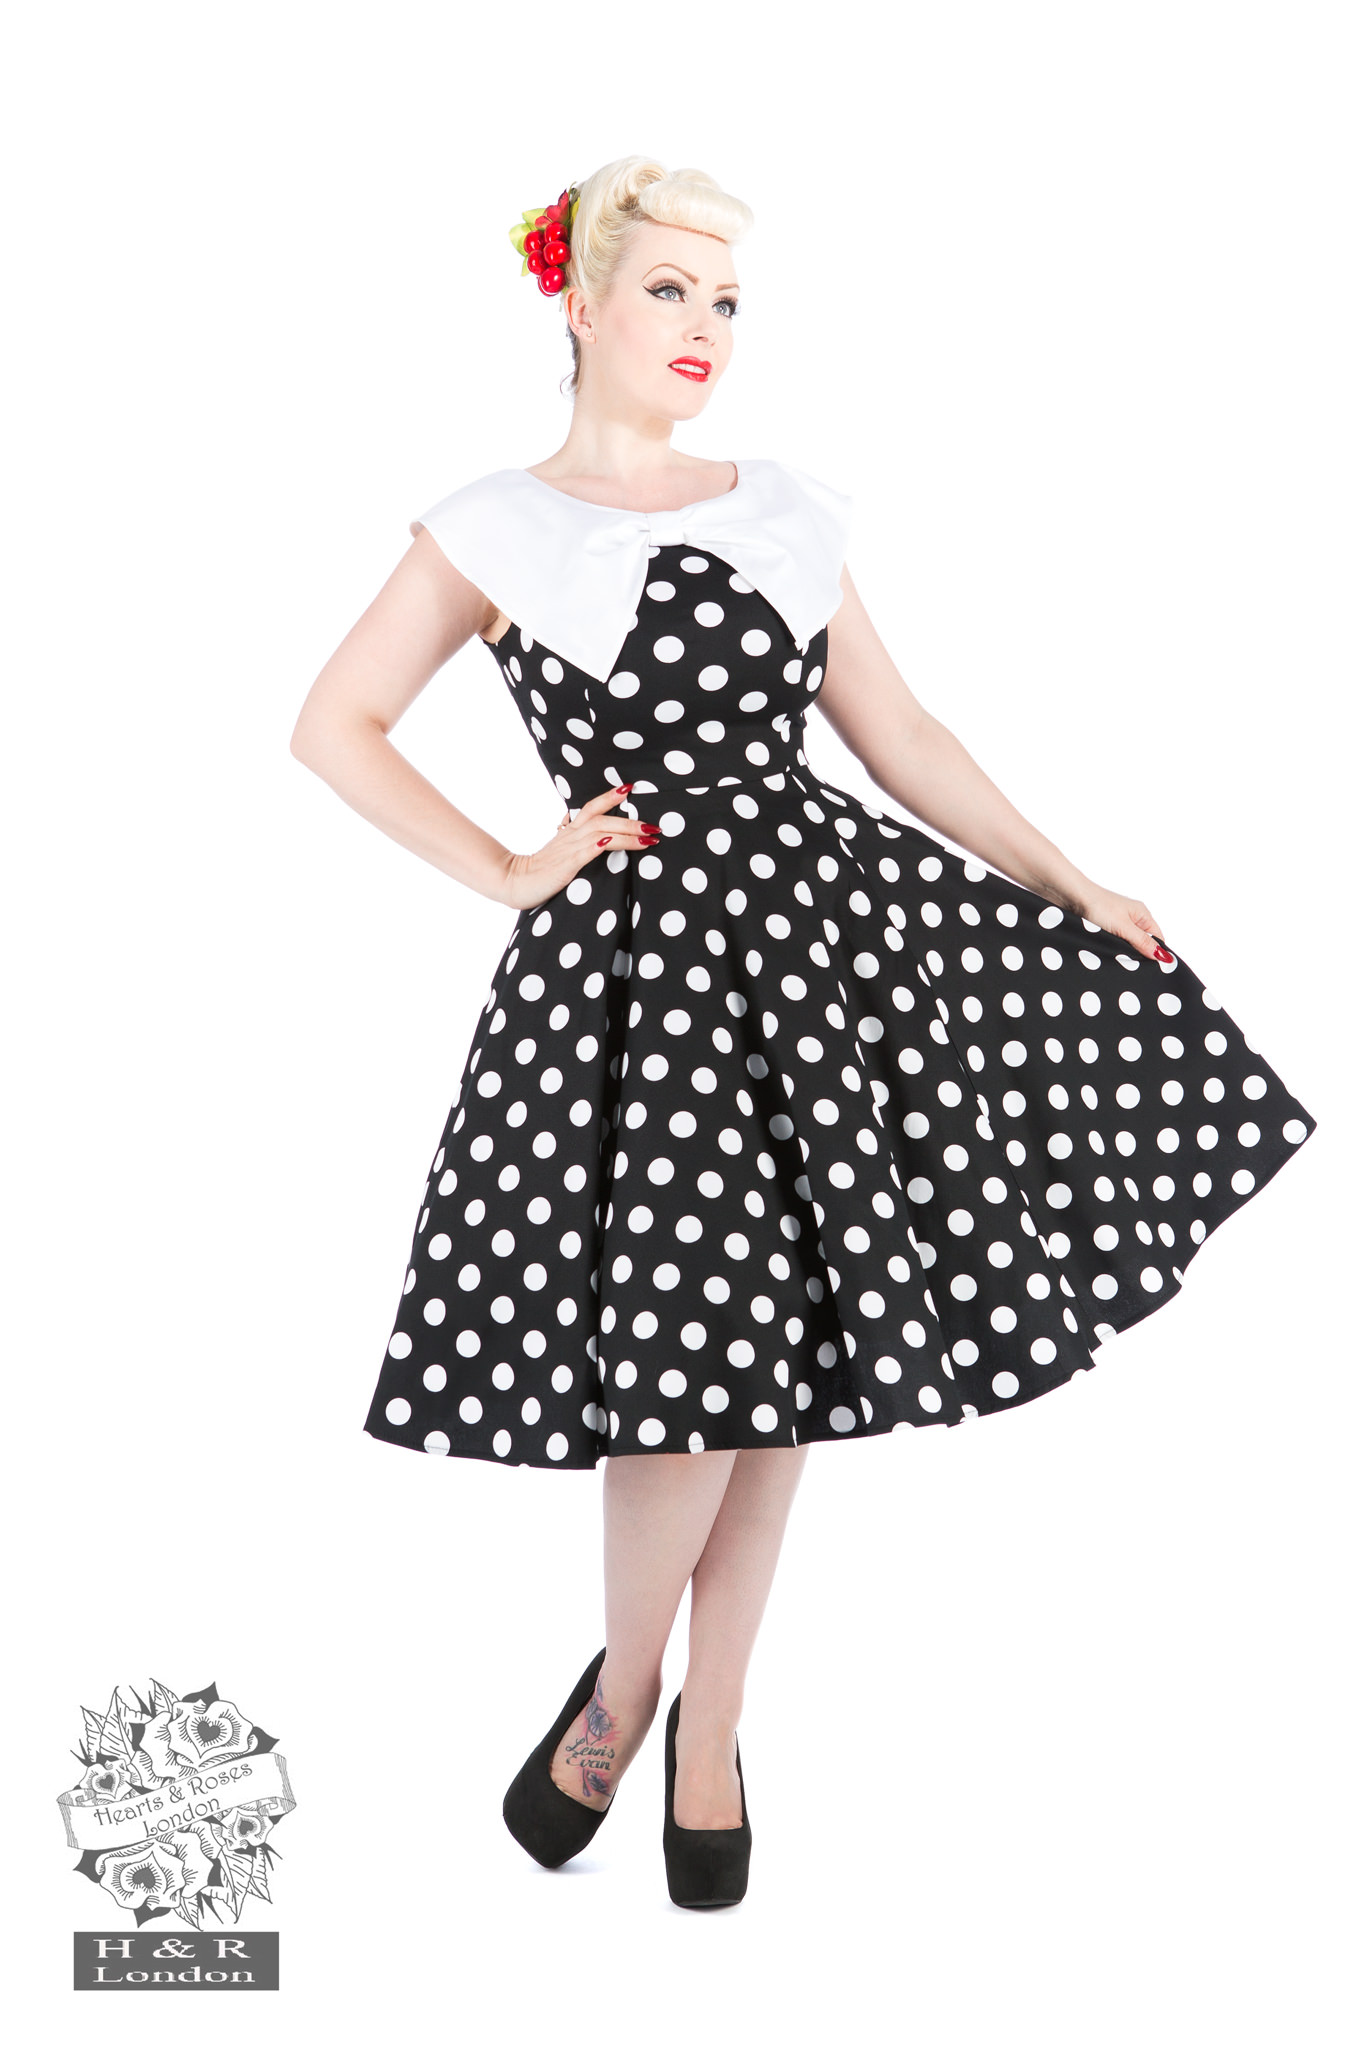 e22efa9ce8213 Black White large Polka Dot Swing Dress in Black/White - Hearts ...